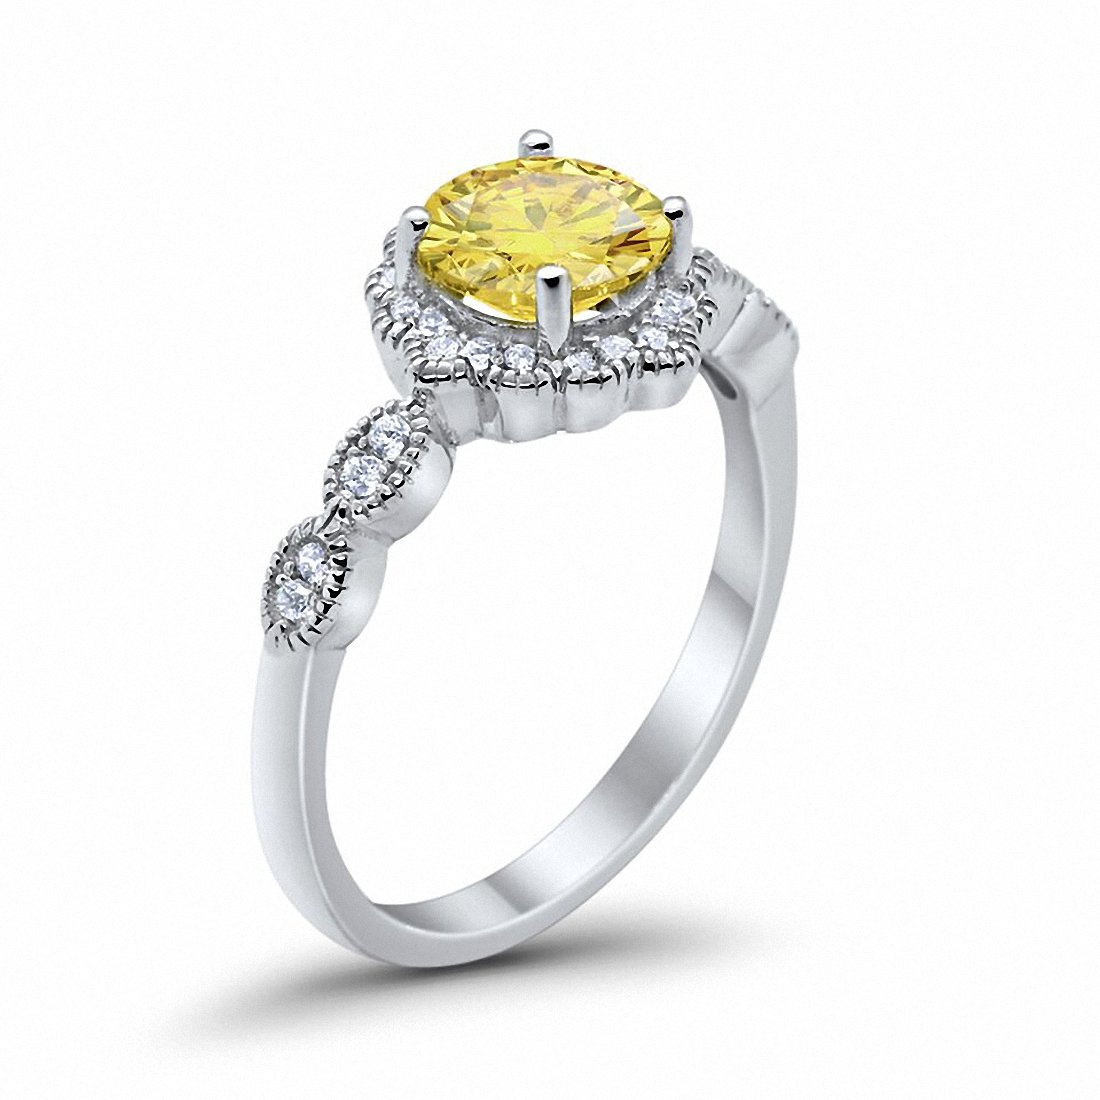 Floral Art Wedding Ring Simulated Yellow Cubic Zirconia 925 Sterling Silver